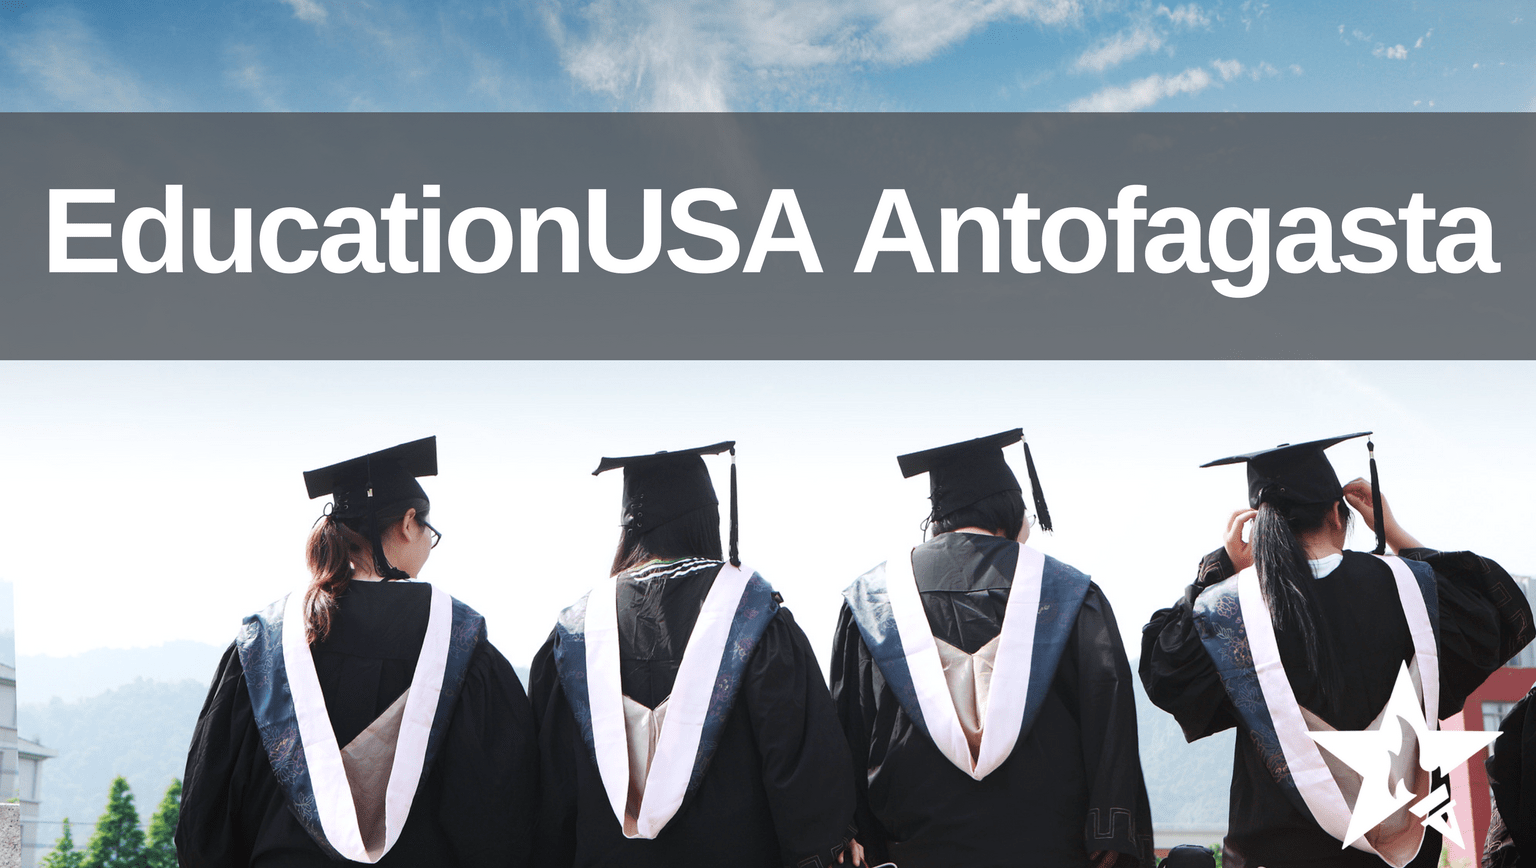 EducationUSA Antofagasta